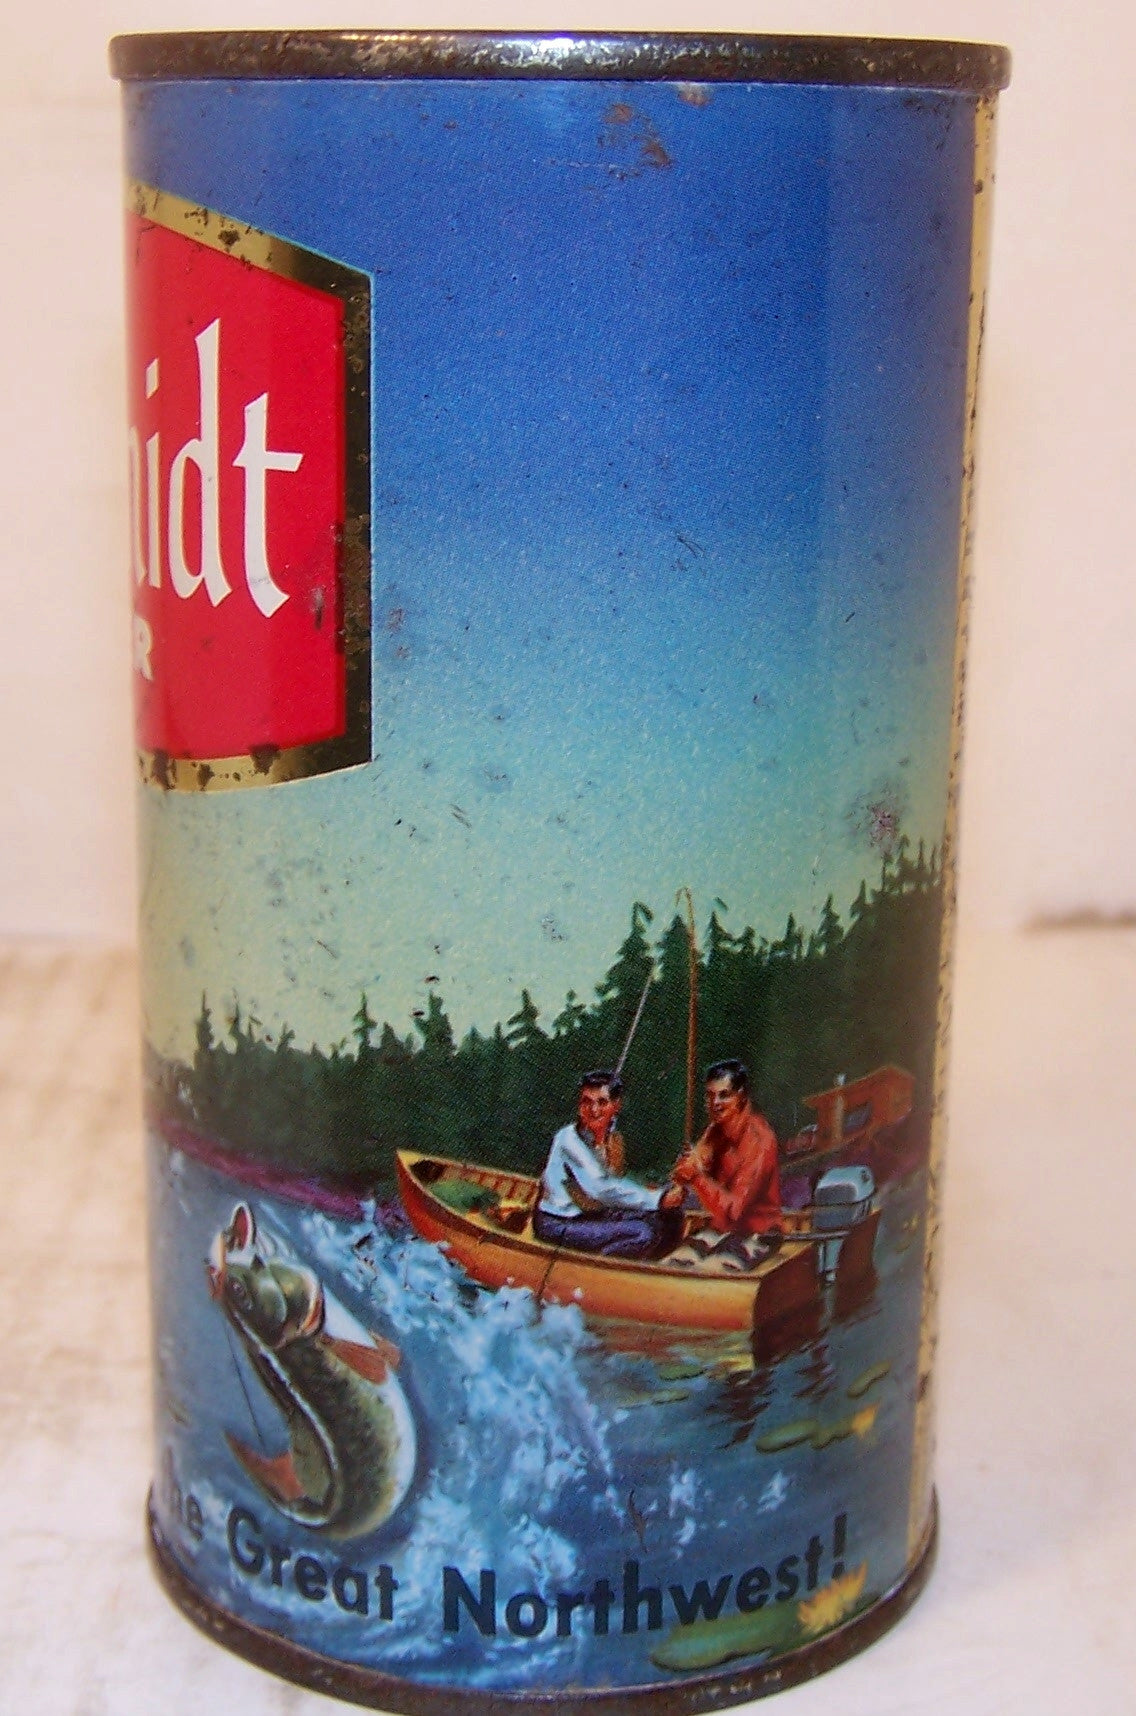 Schmidt Beer (Indian spear fishing) USBC 130-34, Grade 1- Sold 1/20/15